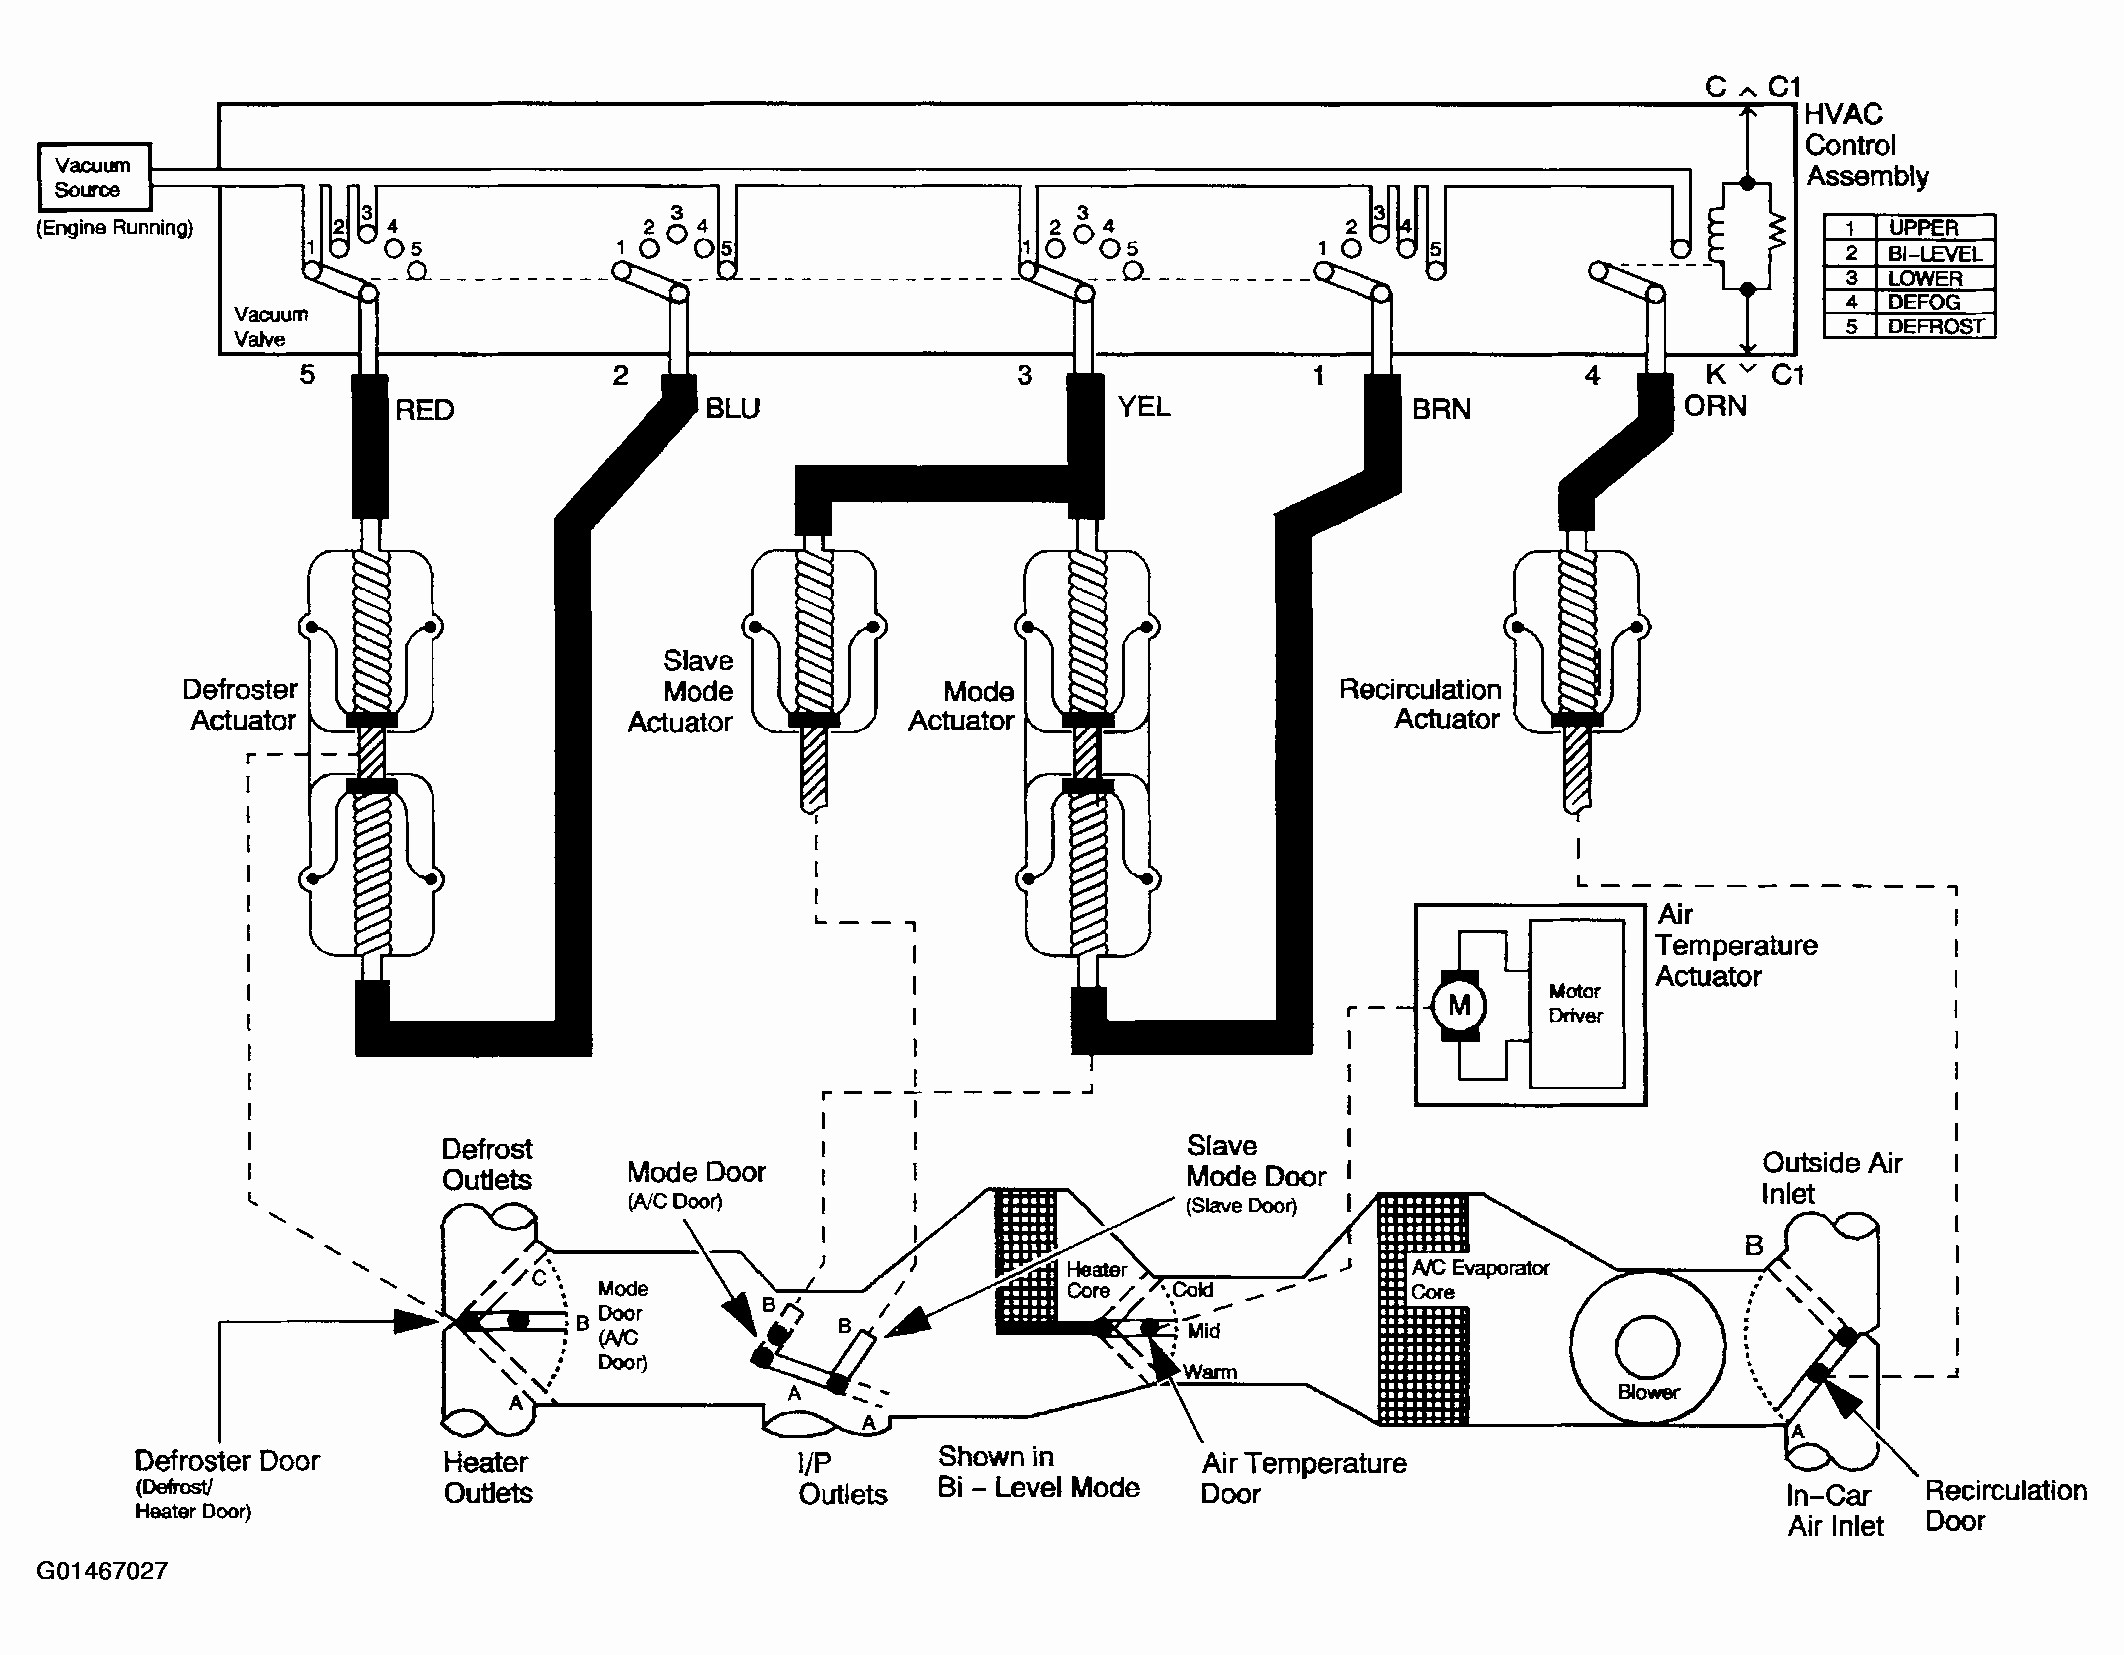 2002 S10 Heater Diagram - Do you want to download wiring ...  Chevrolet S Wiring Schematic on